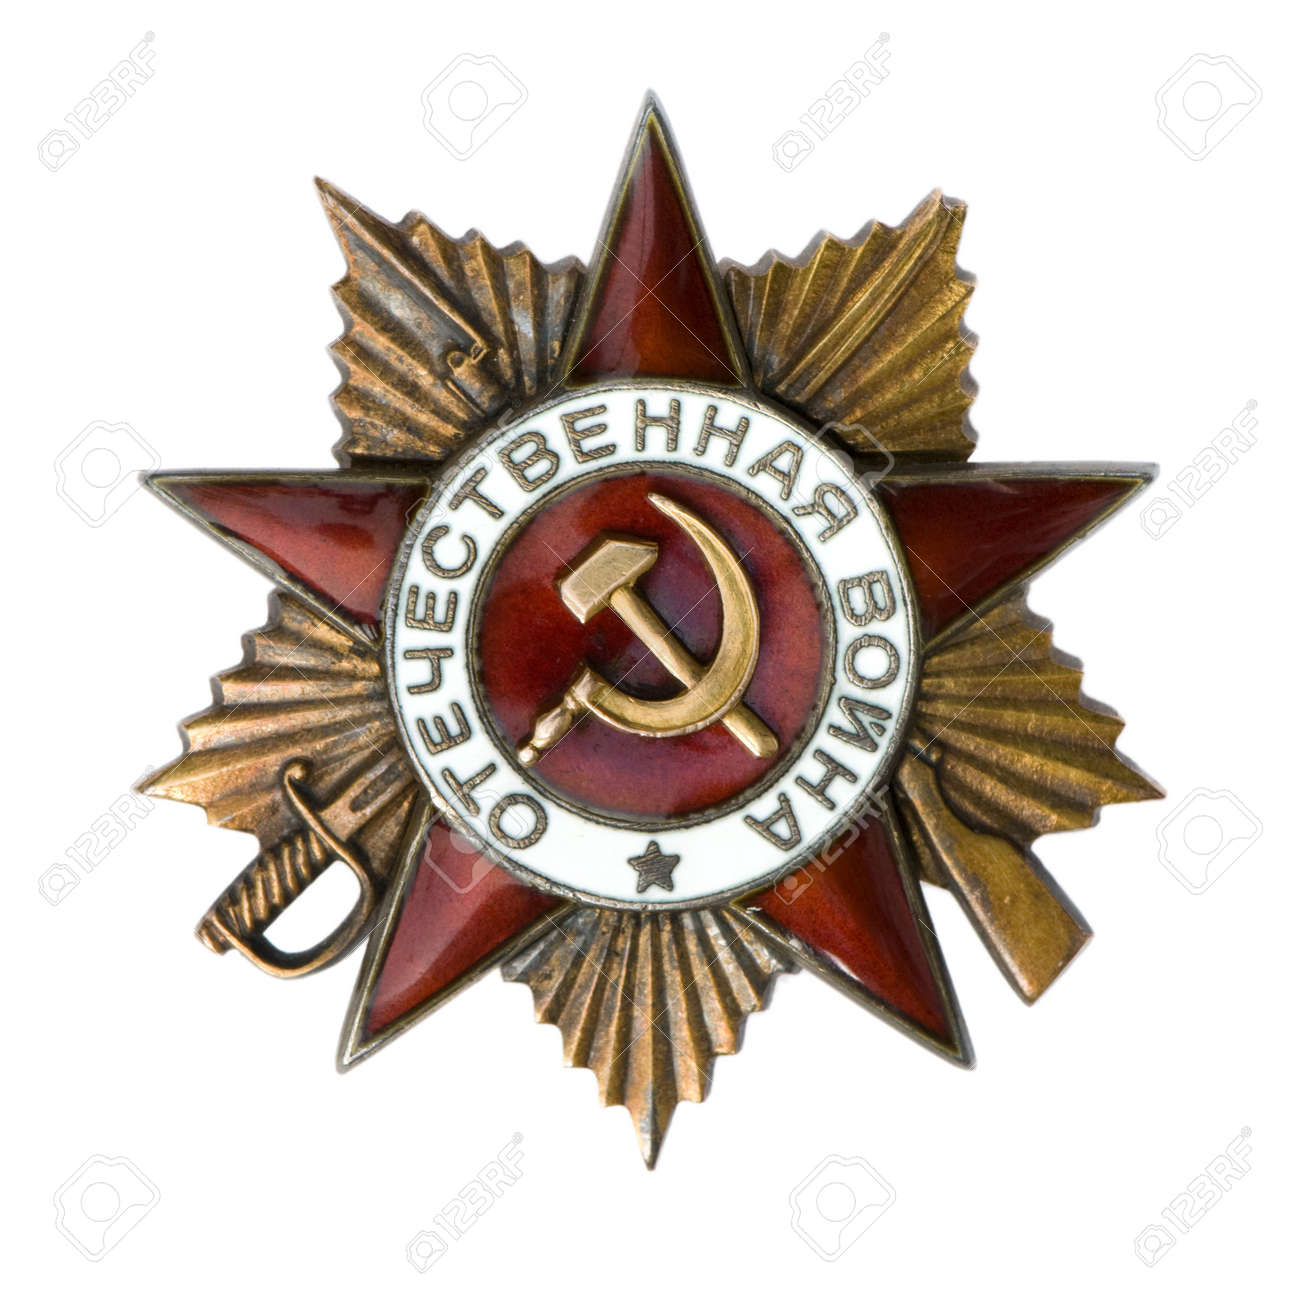 The Order of the Patriotic War was a decoration of the Soviet